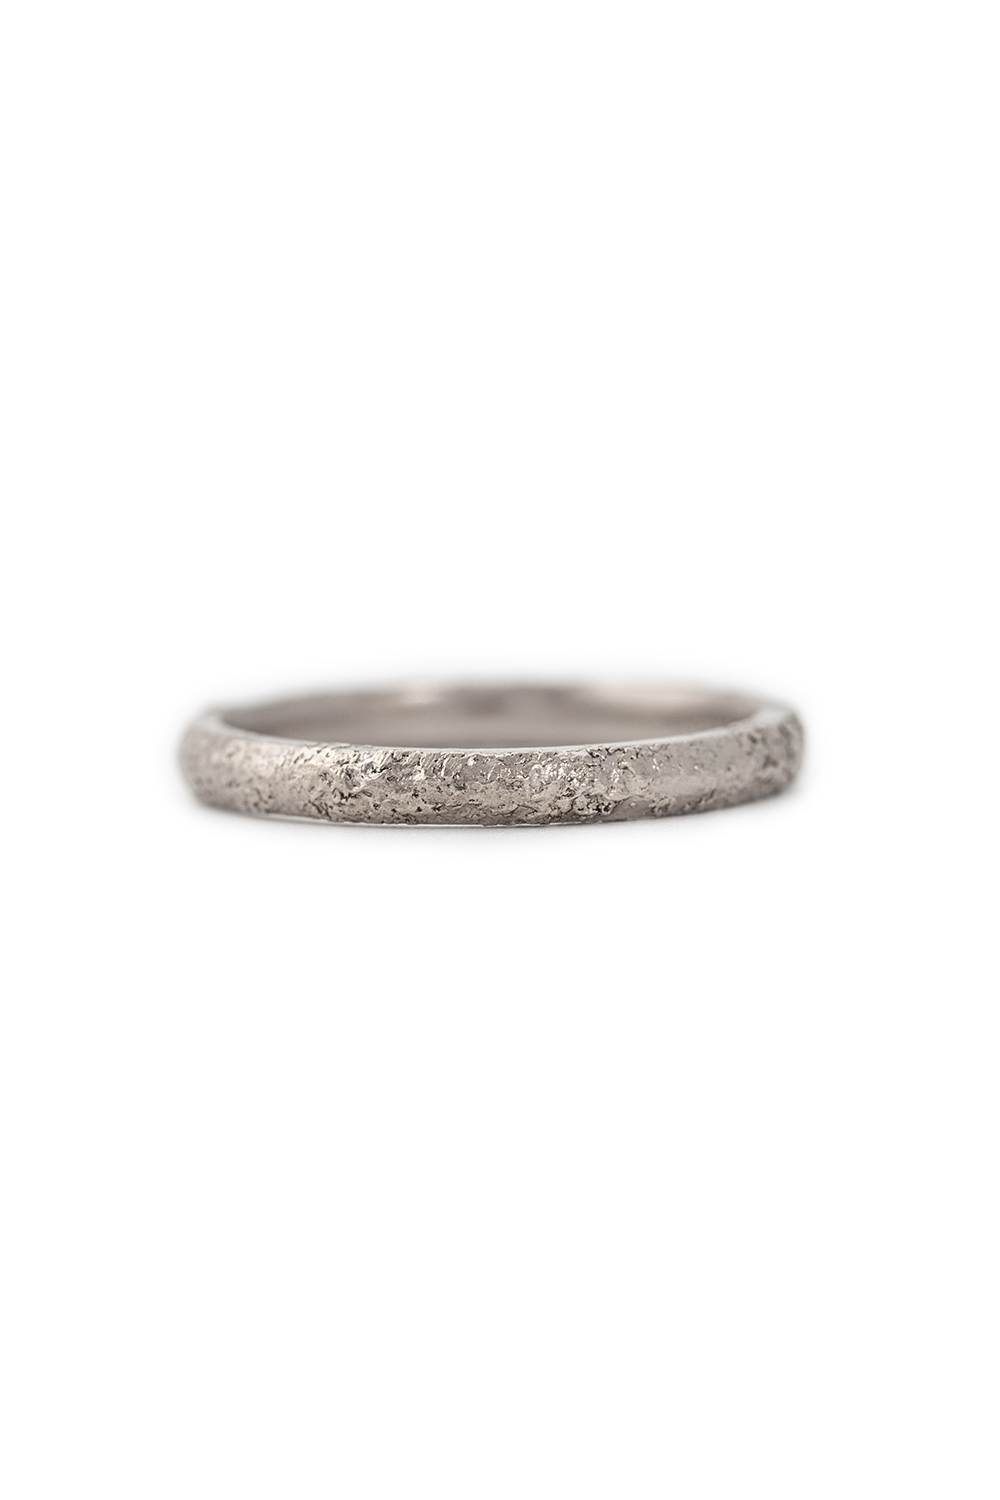 Gold dust fused ring in white gold, £660